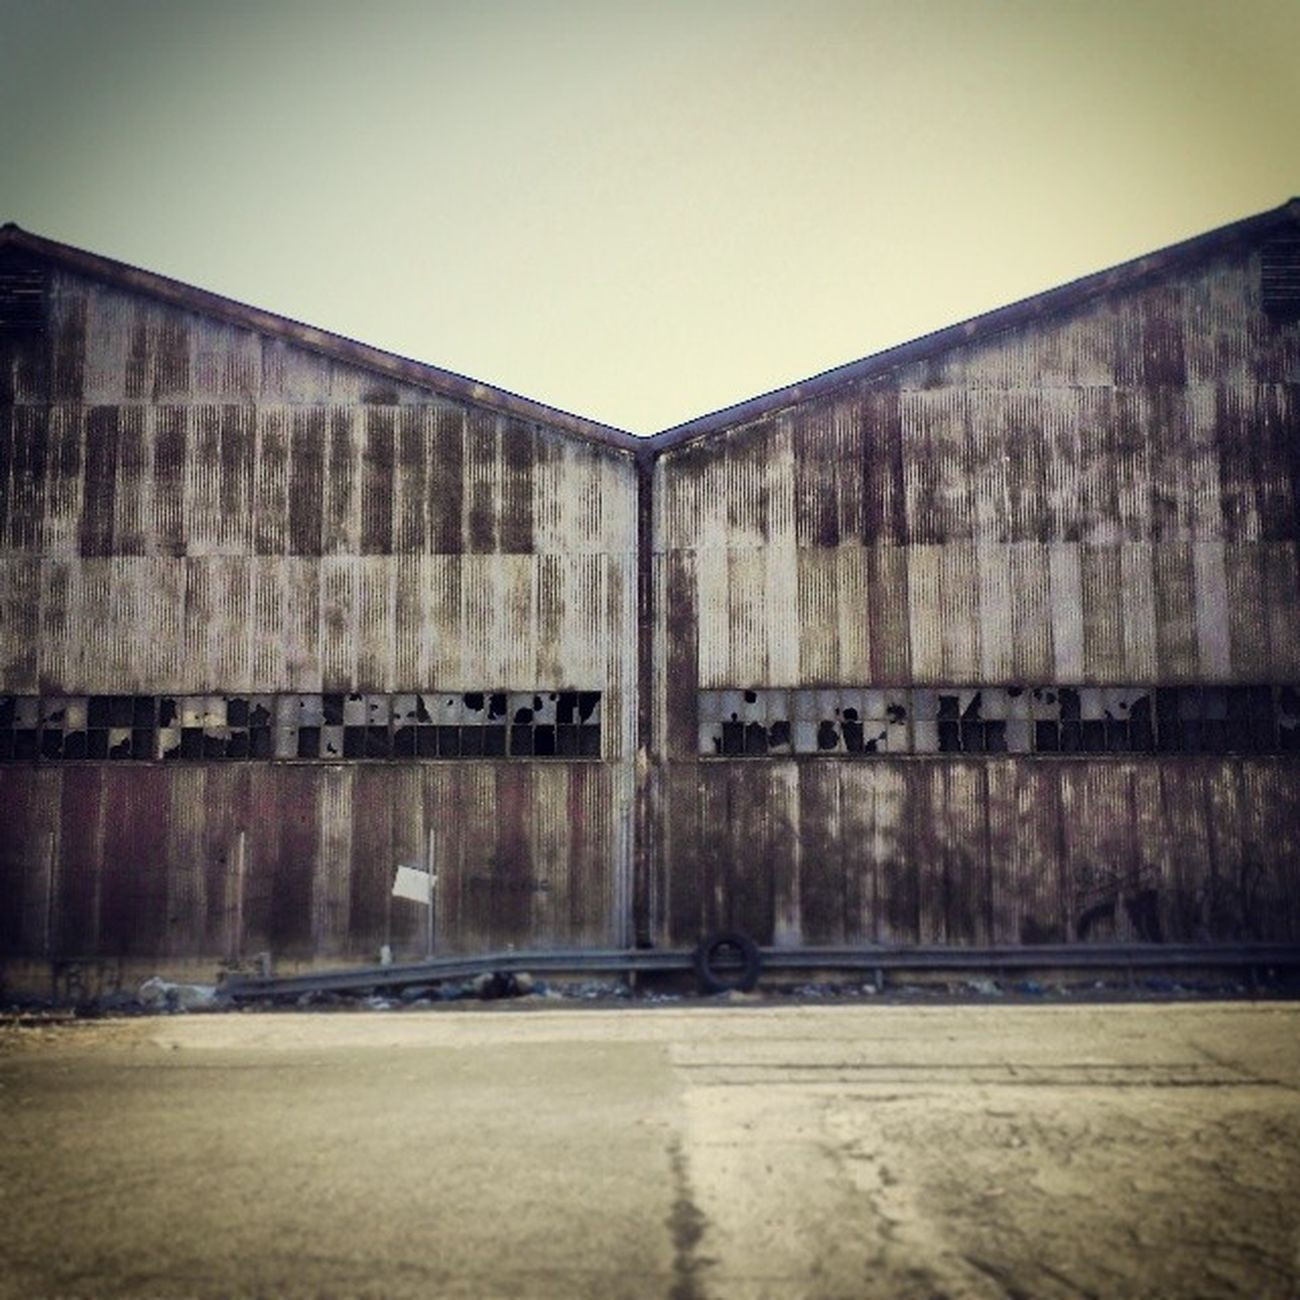 Nobody Home! Old Abandonedwarehouse Abandoned Warehouse rust brokenwindows symmetry losangeles LA